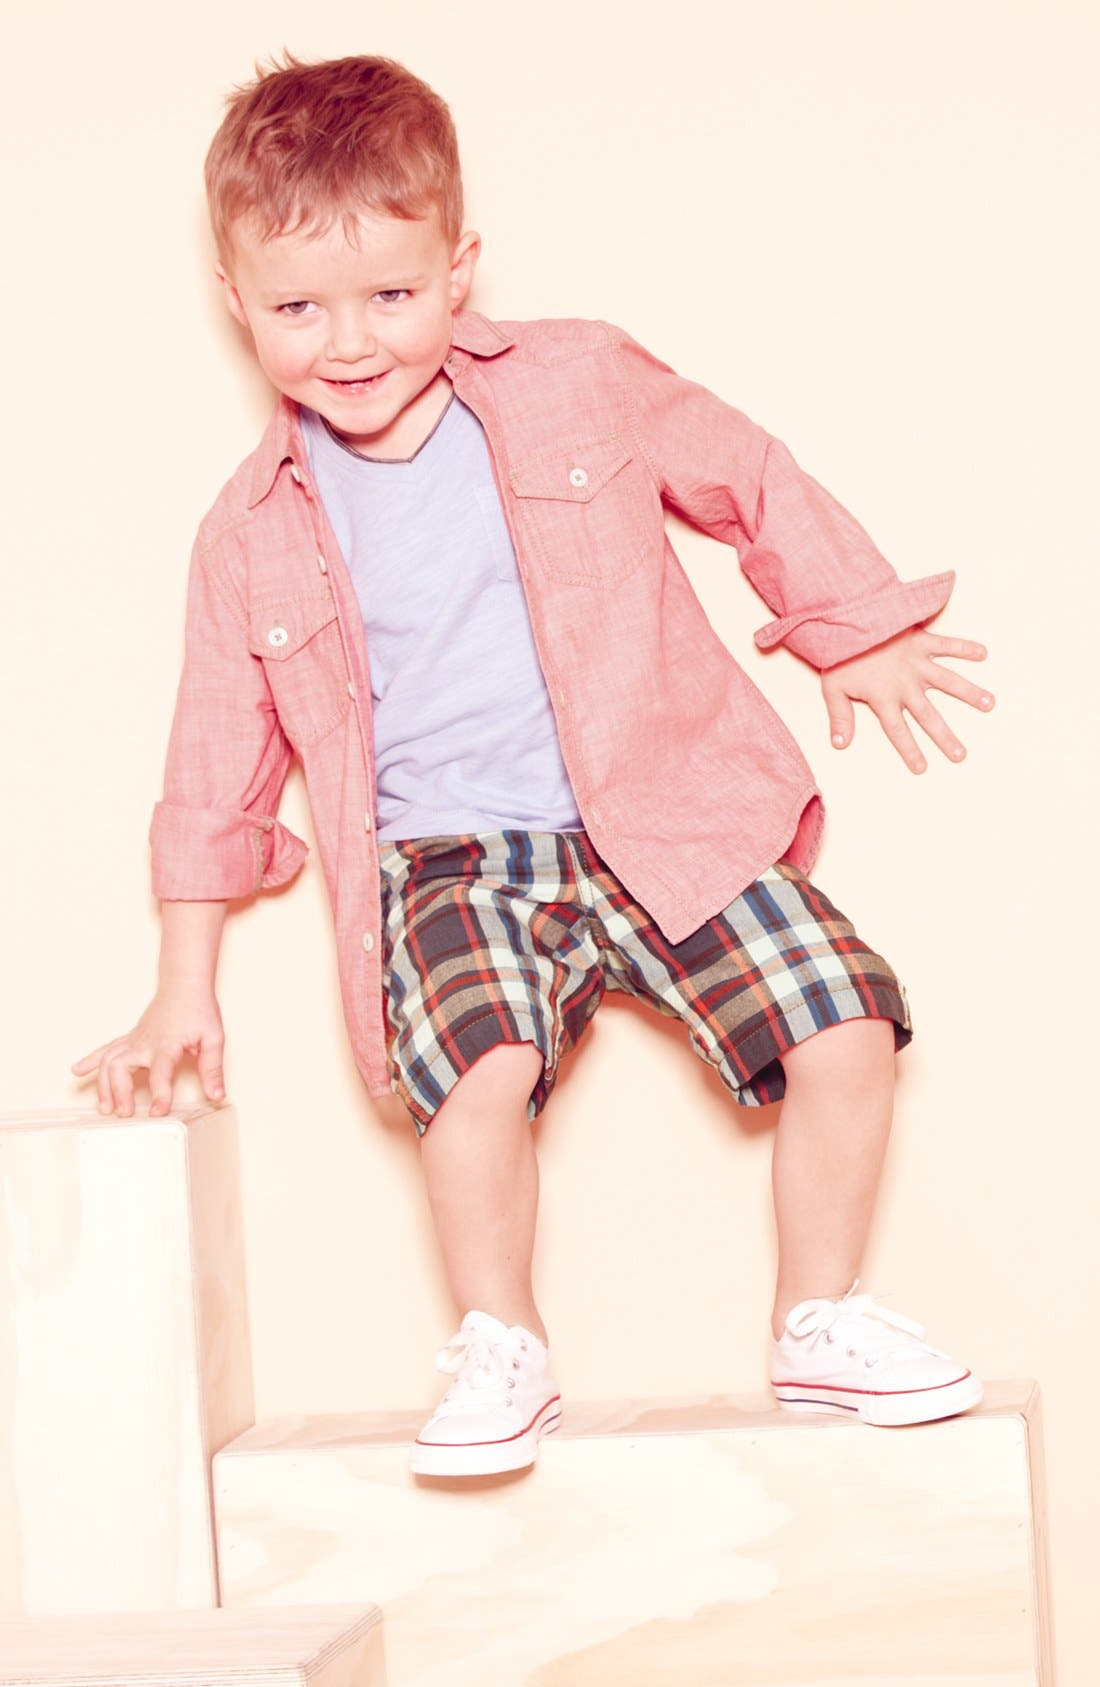 Alternate Image 1 Selected - Tucker + Tate Chambray Shirt, T-Shirt & Converse Sneaker (Toddler)